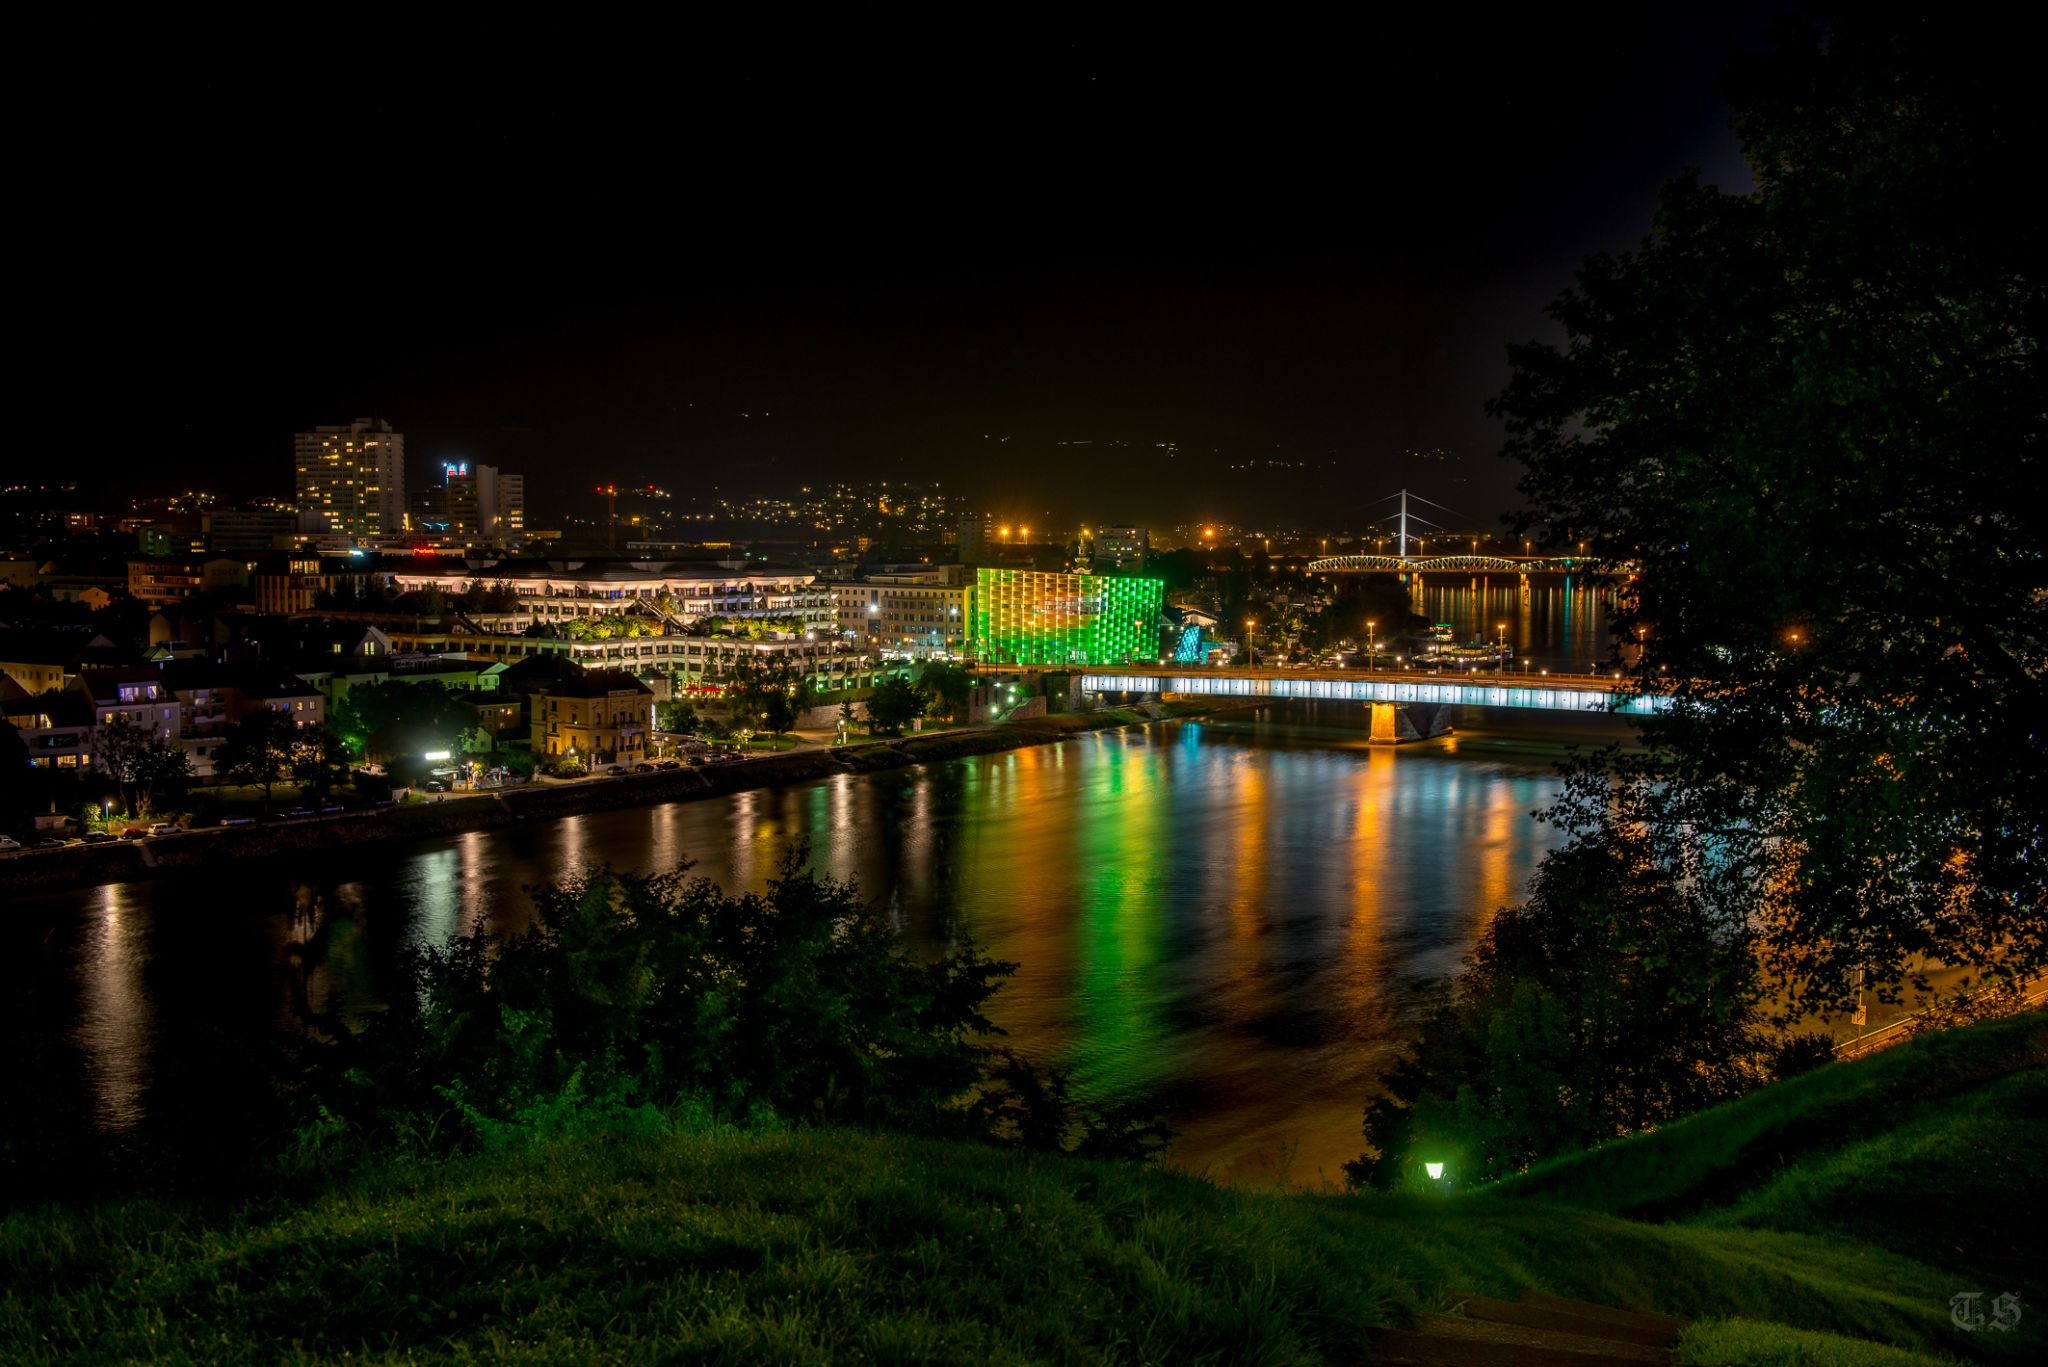 Linz @ night by Tim